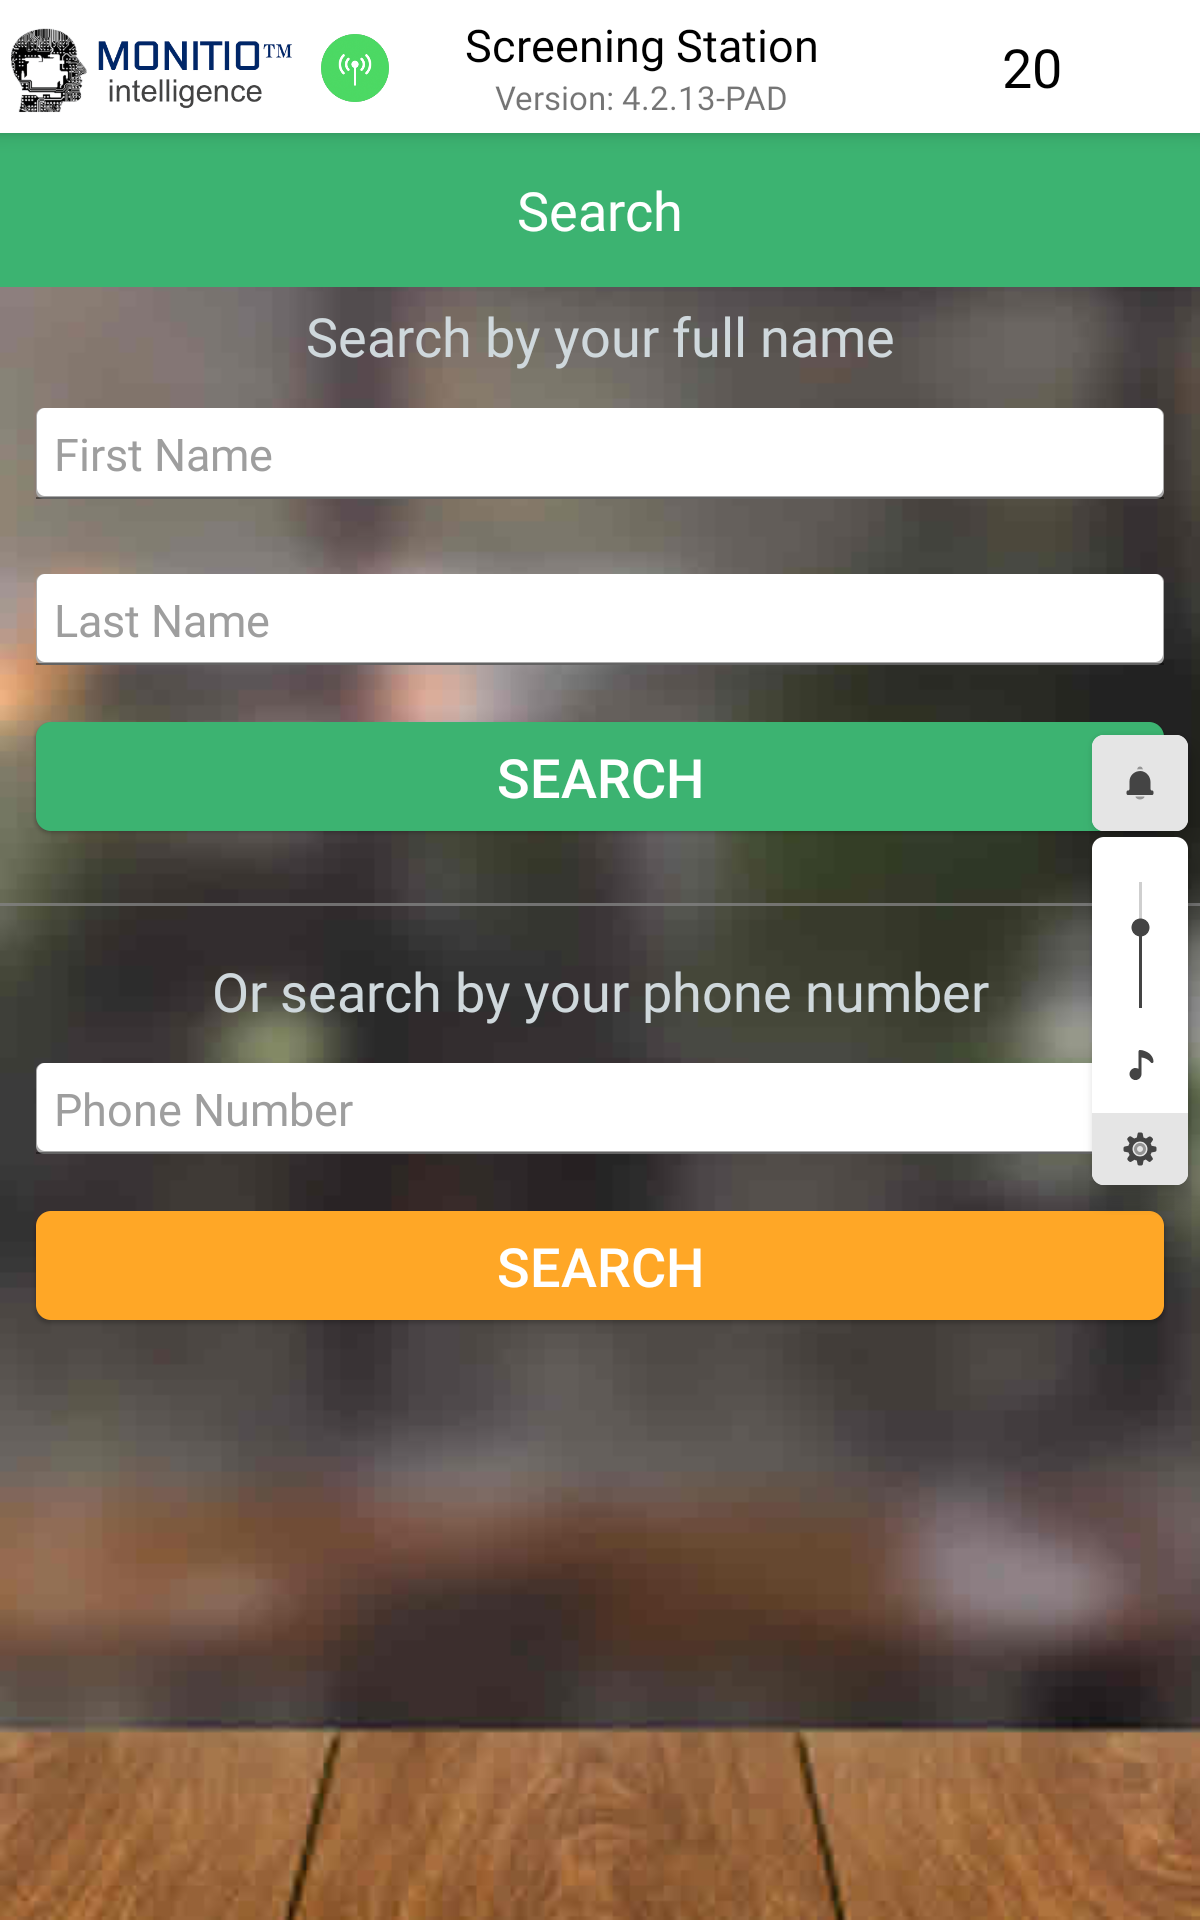 Search by name or phone number